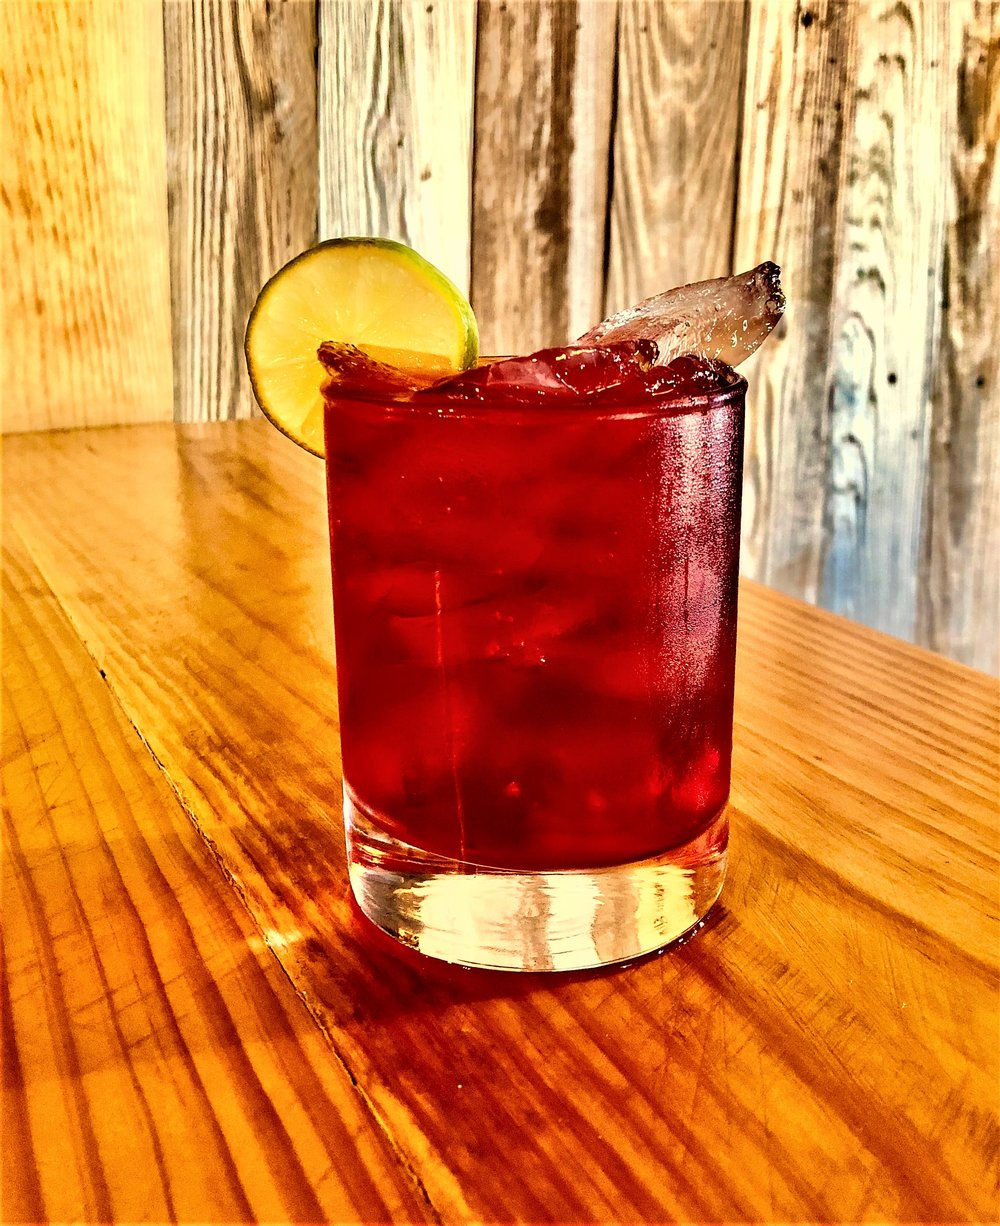 WRV Cape Cod  - On ice, add 1 or 2 shots of WILD RAG VODKA or WILD RAG MESQUITE BEAN VODKA. Fill glass with Cranberry Juice & add a twist of lime. Garnish with key lime slice.